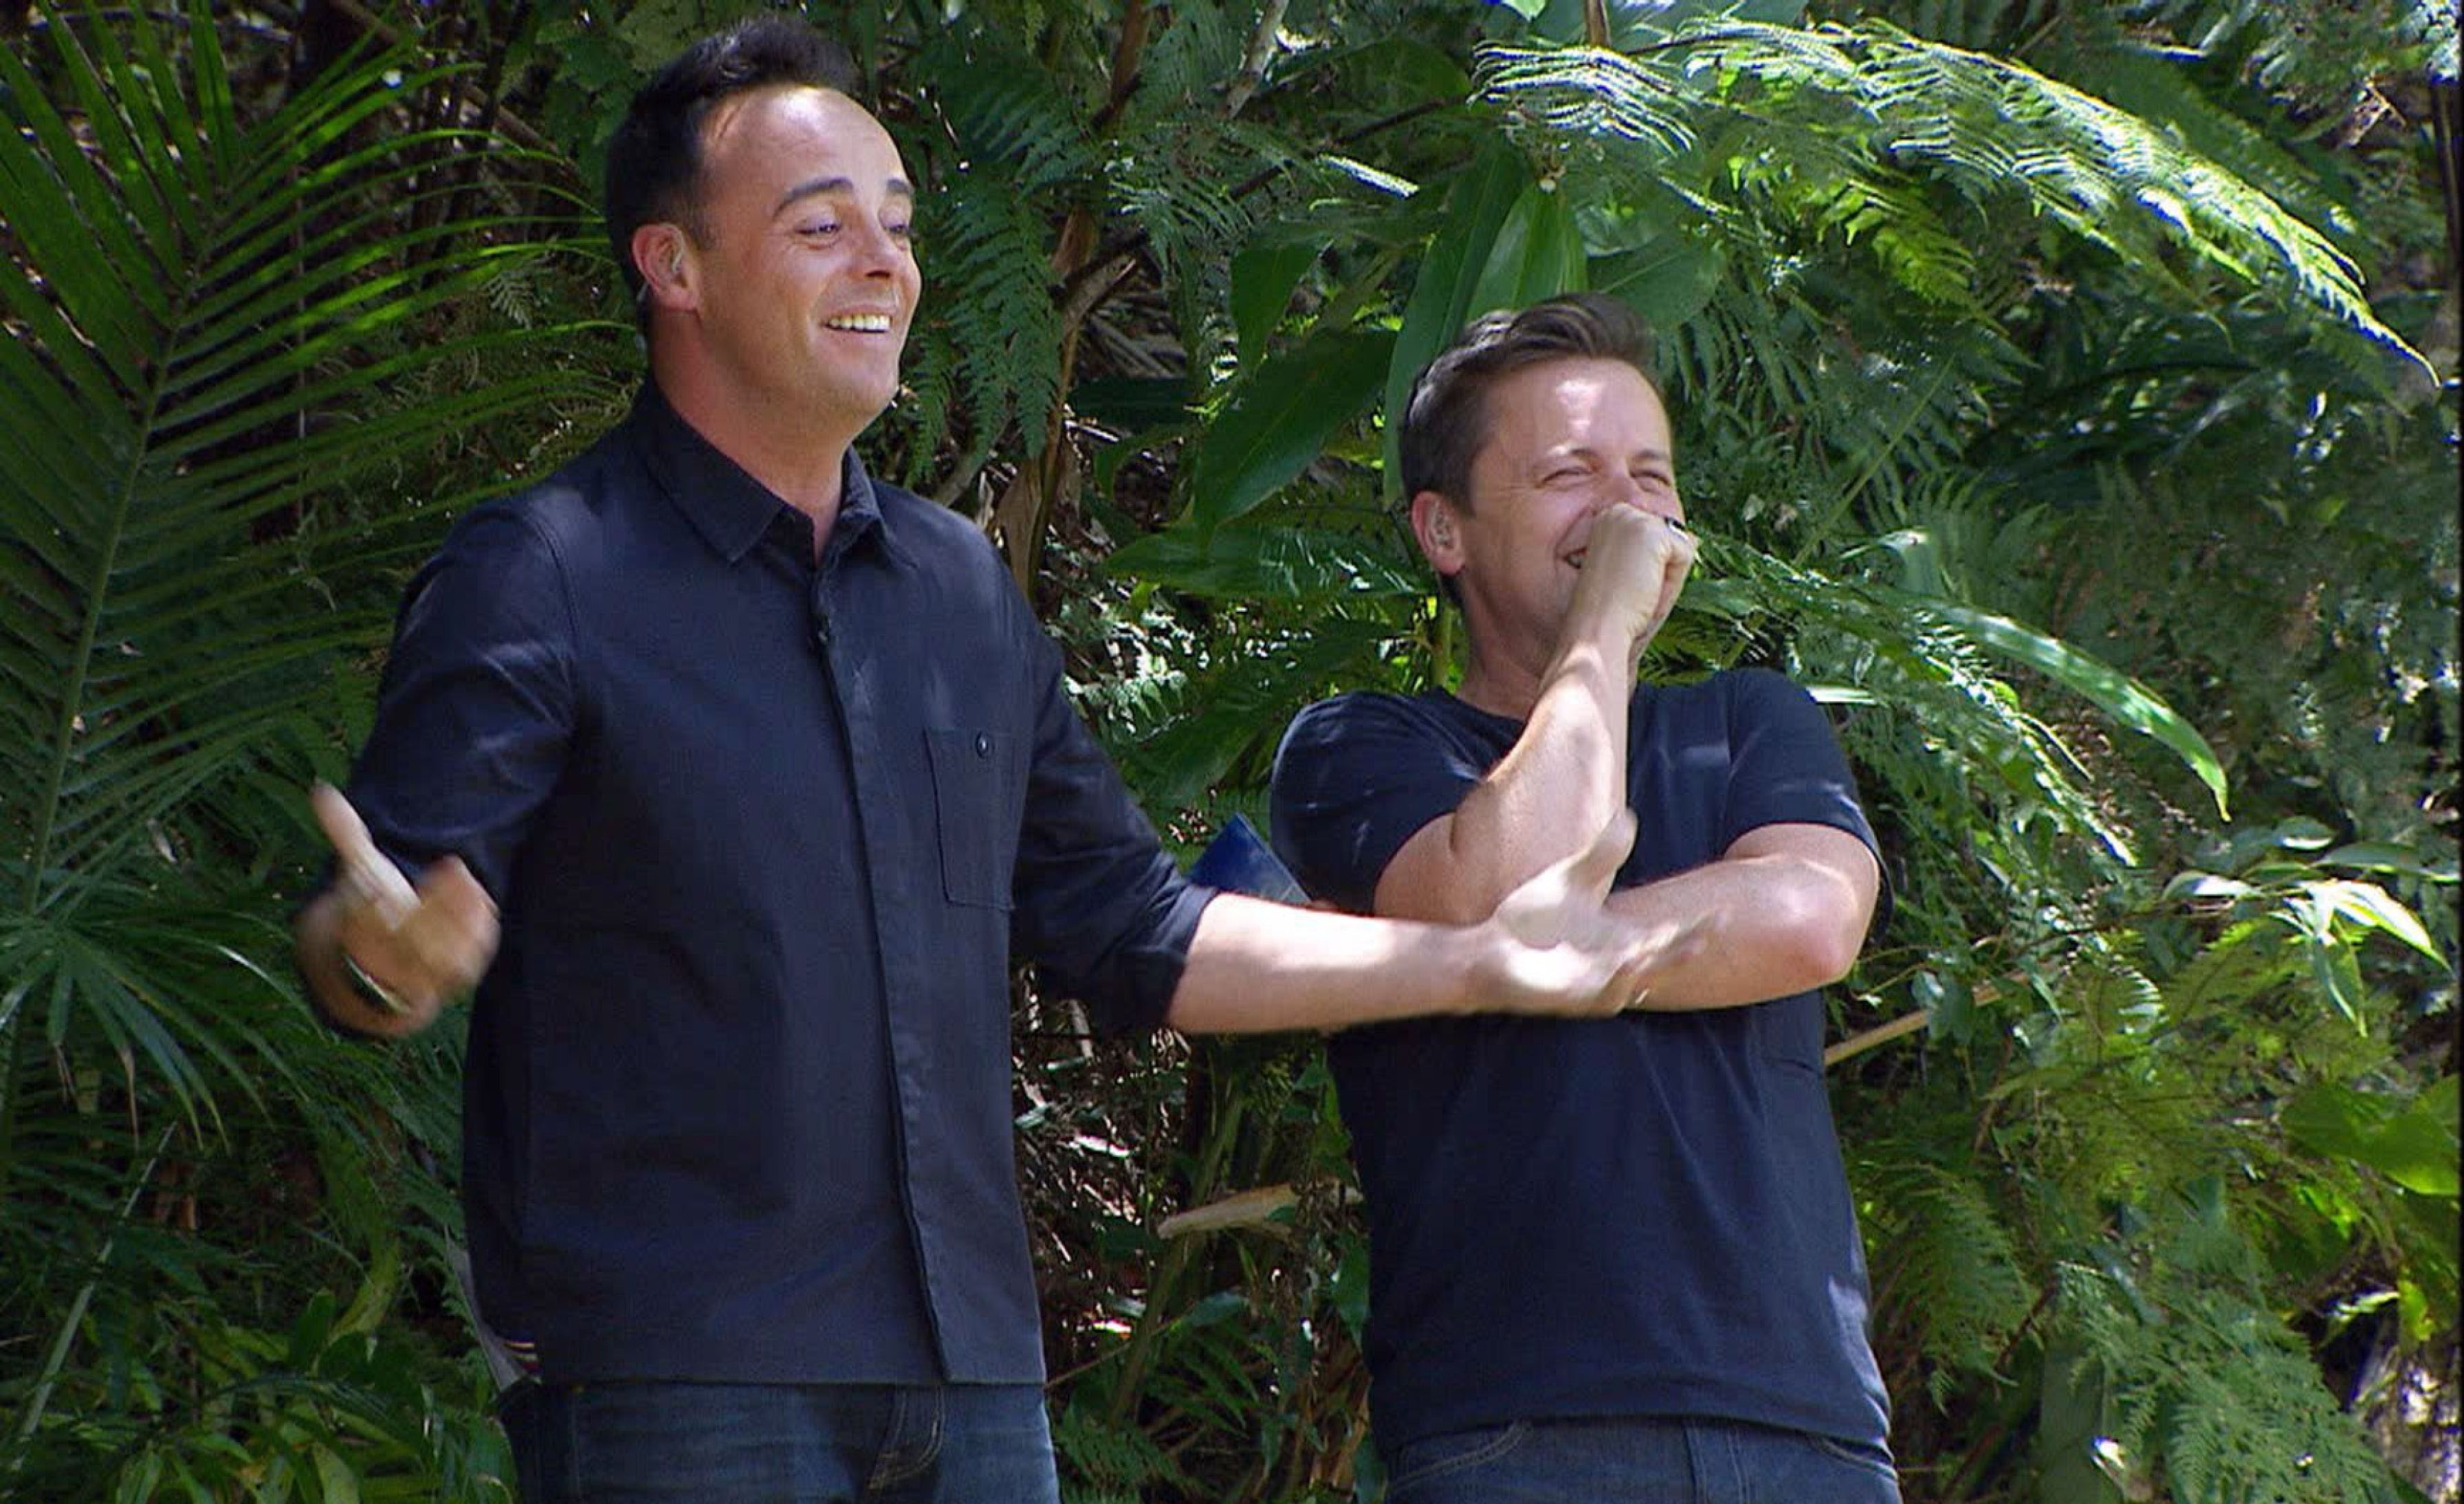 I'm A Celebrity 2013: Ant and Dec get hysterical as Steve Davis makes a fool of himself